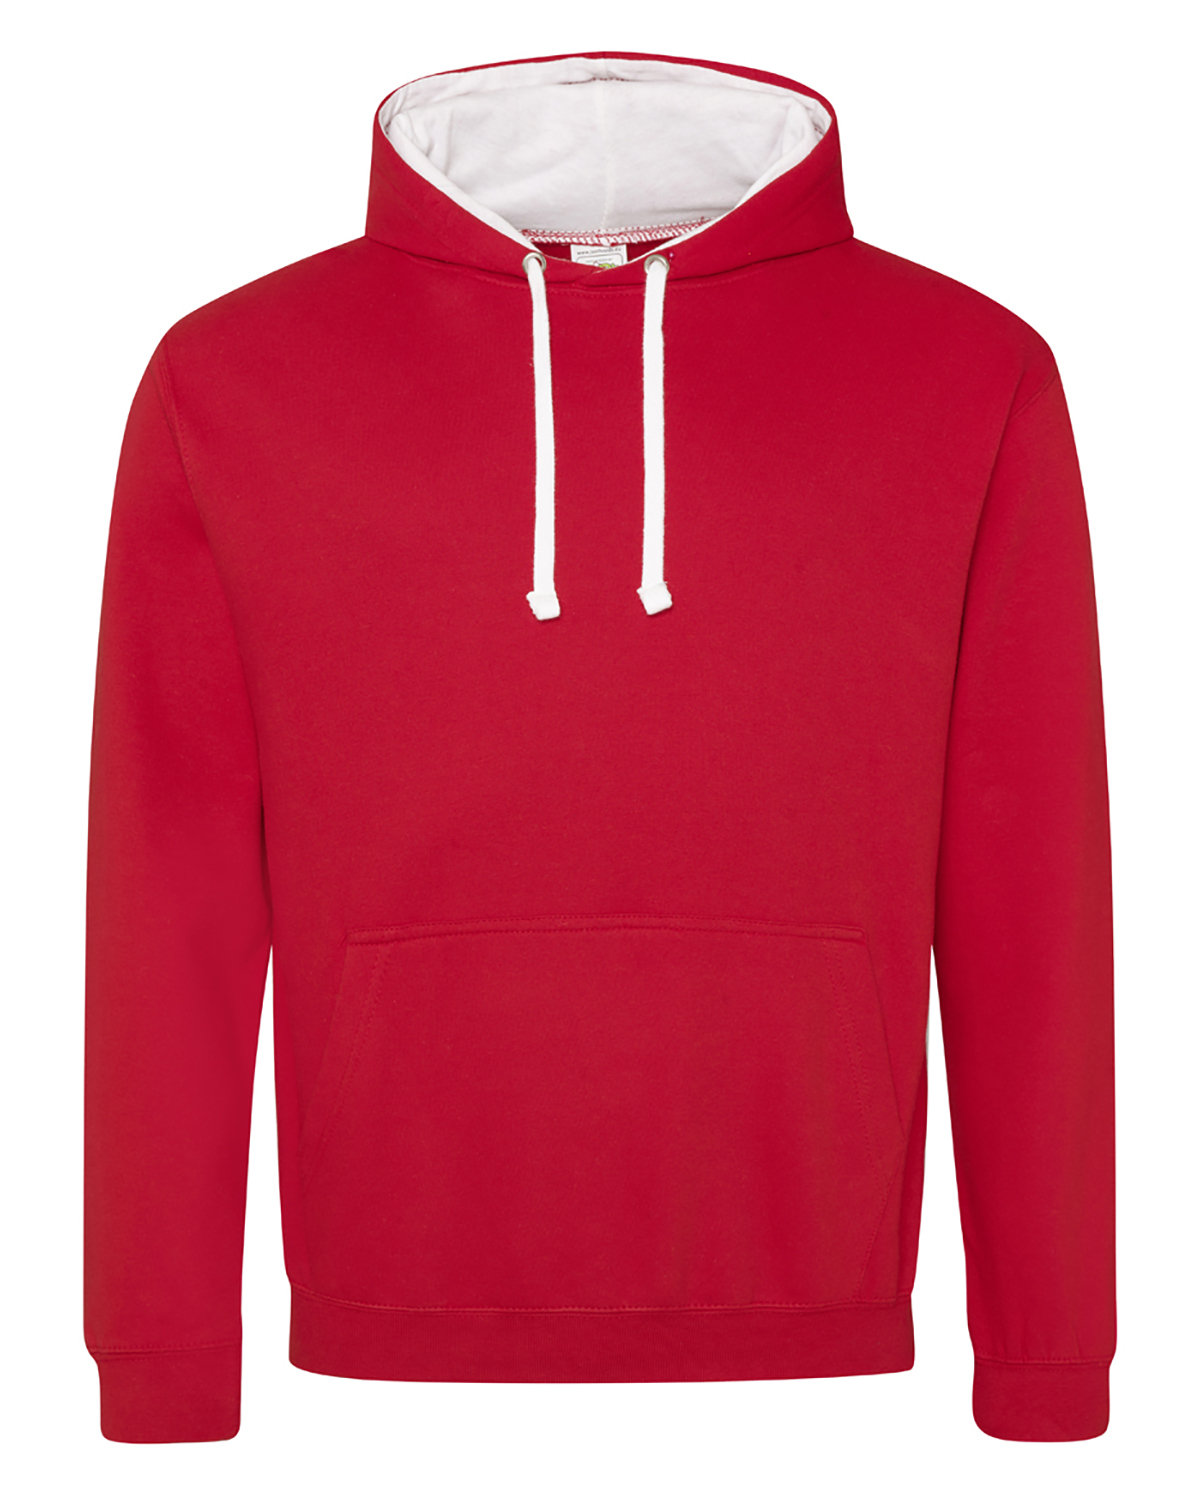 Just Hoods By AWDis Adult 80/20 Midweight Varsity Contrast Hooded Sweatshirt FIRE RD/ ARC WHT